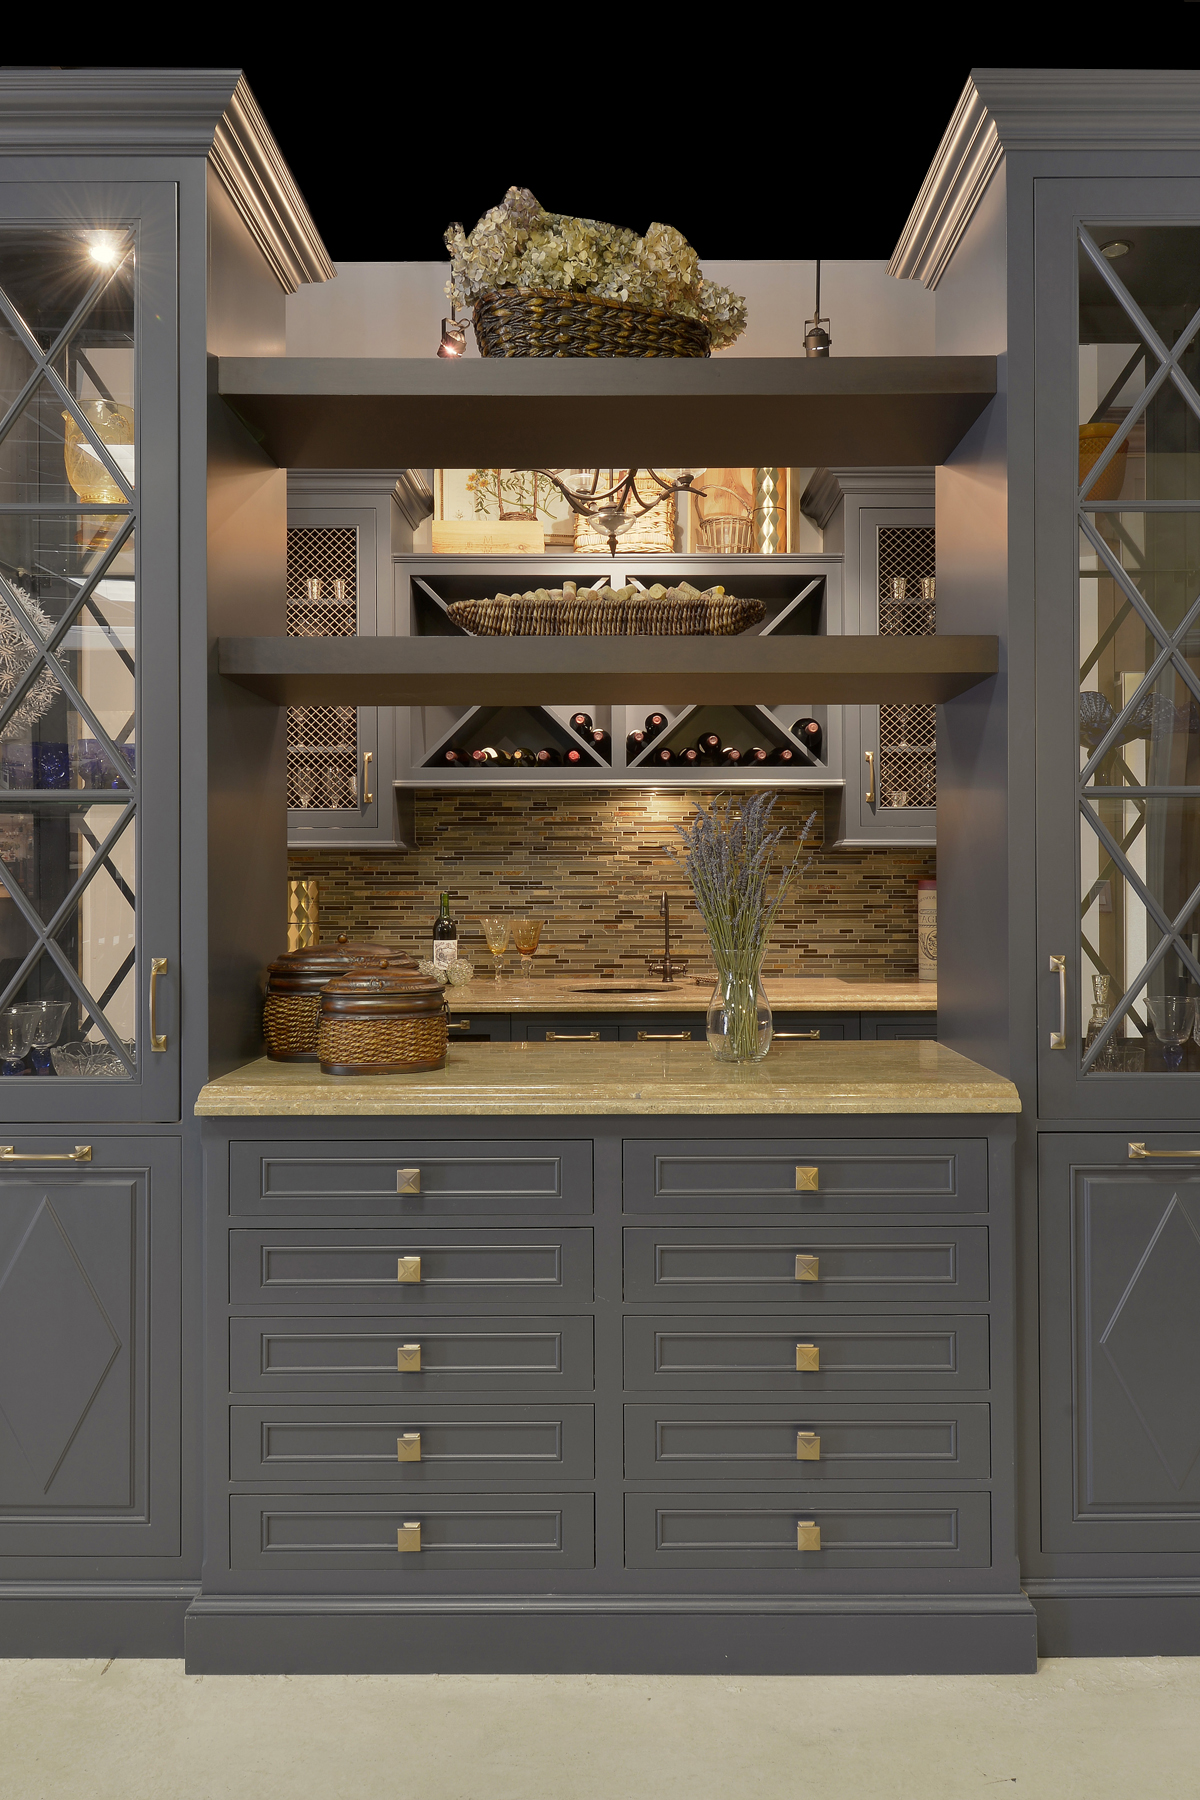 Fully custom blue painted Wood-Mode cabinets with brass hardware, featuring wine racks; glass front cabinets, and wire mesh cabinet door inserts. Designed by Paula Greer, CKD of Bilotta Kitchens.